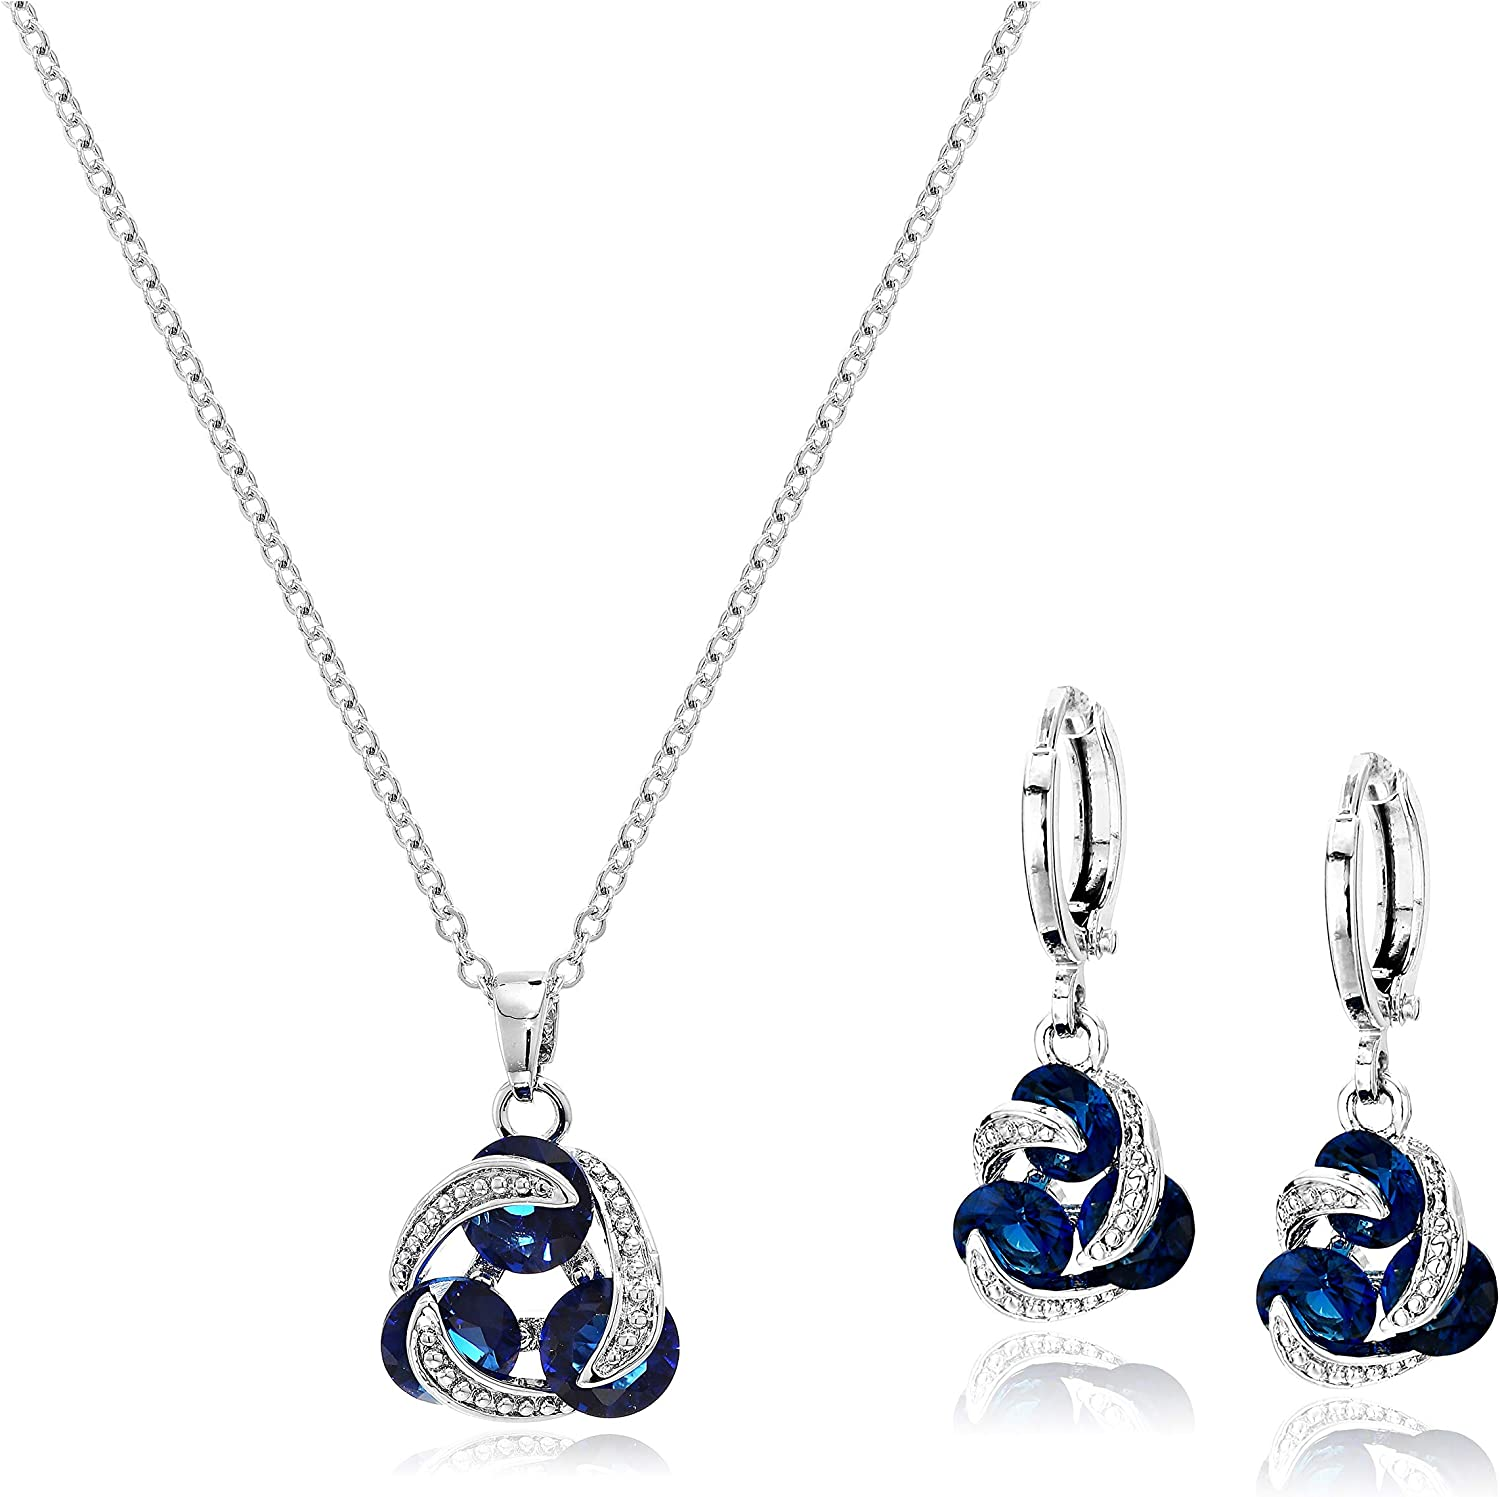 Crystalline Azuria Round Colorful Multi Blue Simulated Sapphire White Cubic Zirconia Crystals Jewellery Set Pendant Necklace 18